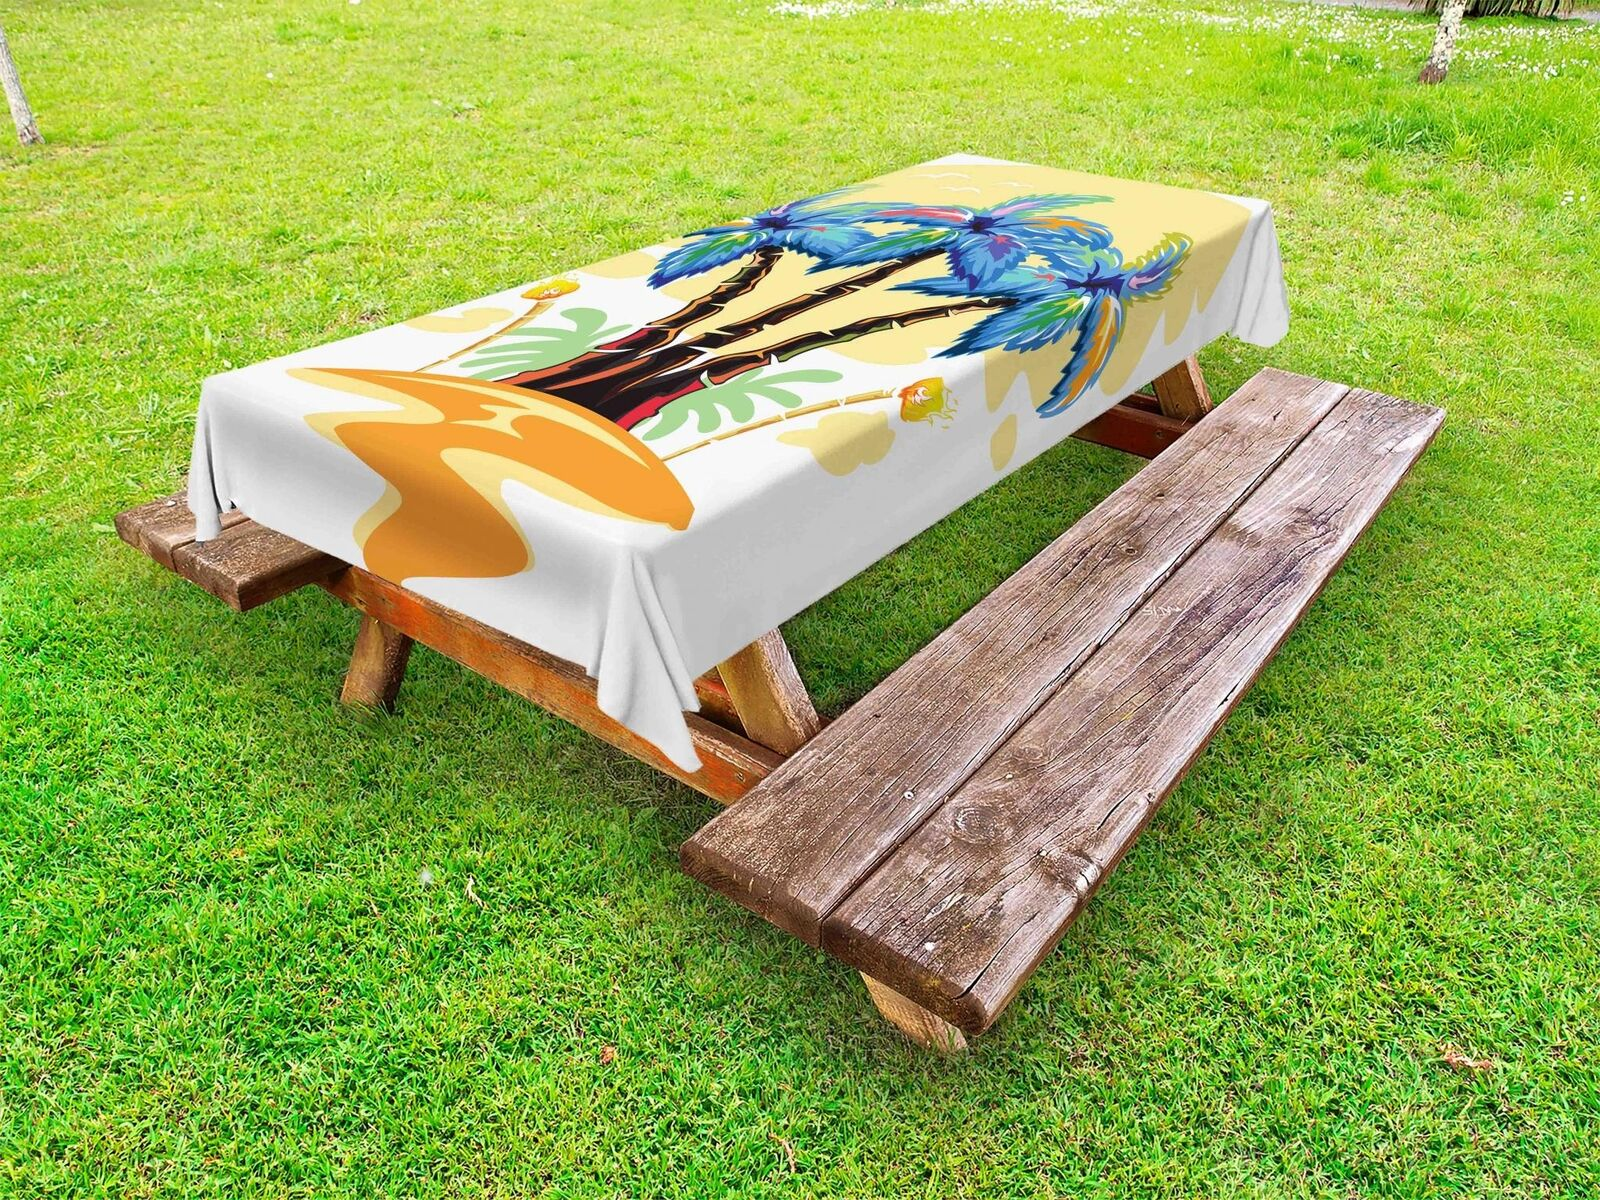 Exotic Palm Tree Outdoor Picnic Tablecloth Tablecloth Tablecloth in 3 Größes Washable Waterproof a57ed5